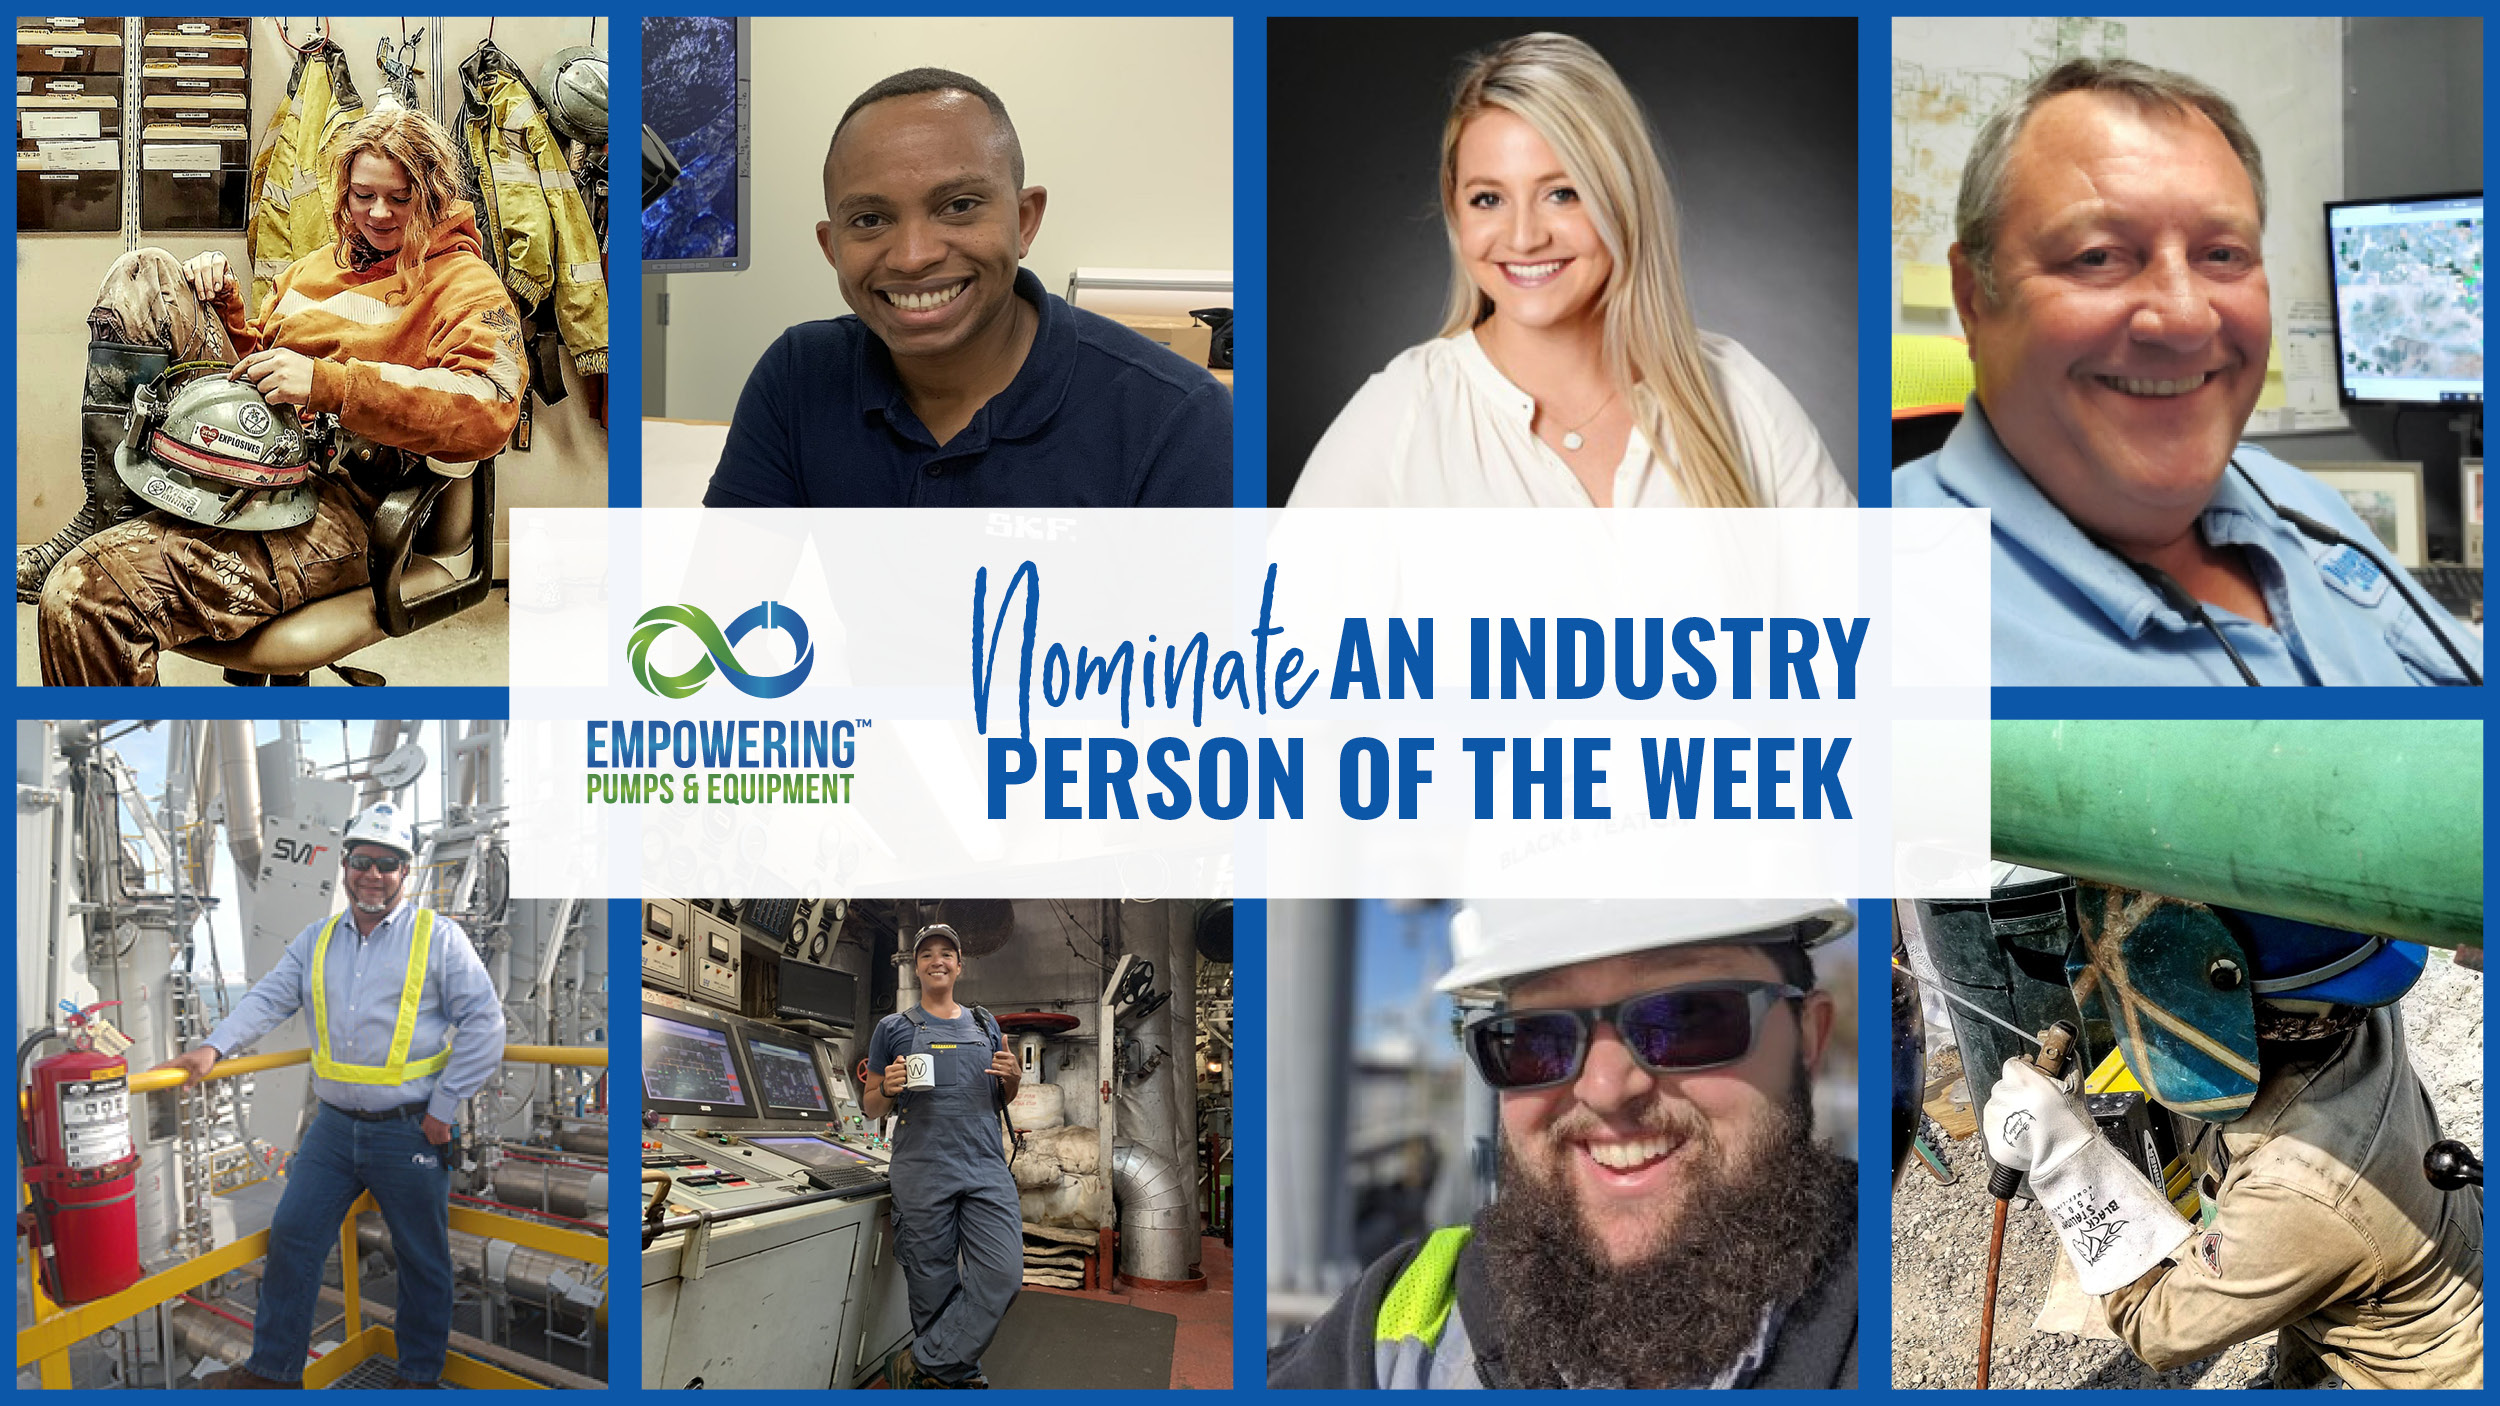 Industry Person of the Week